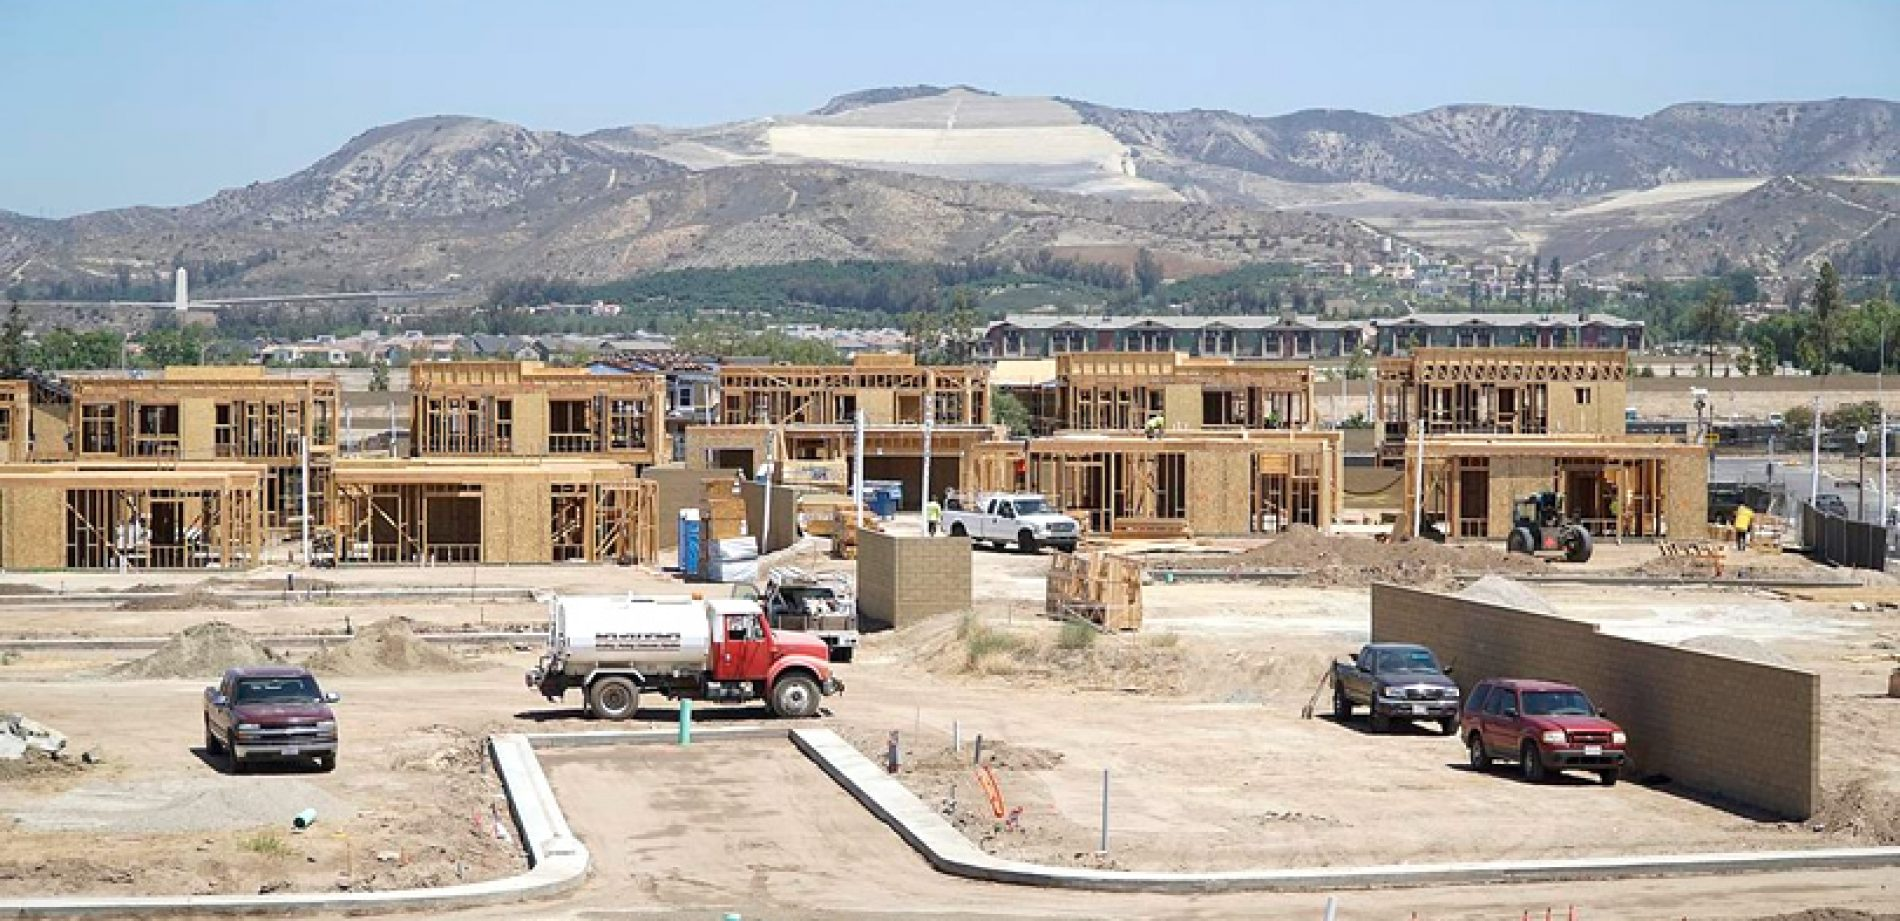 New Home Sales on the Wane in the OC